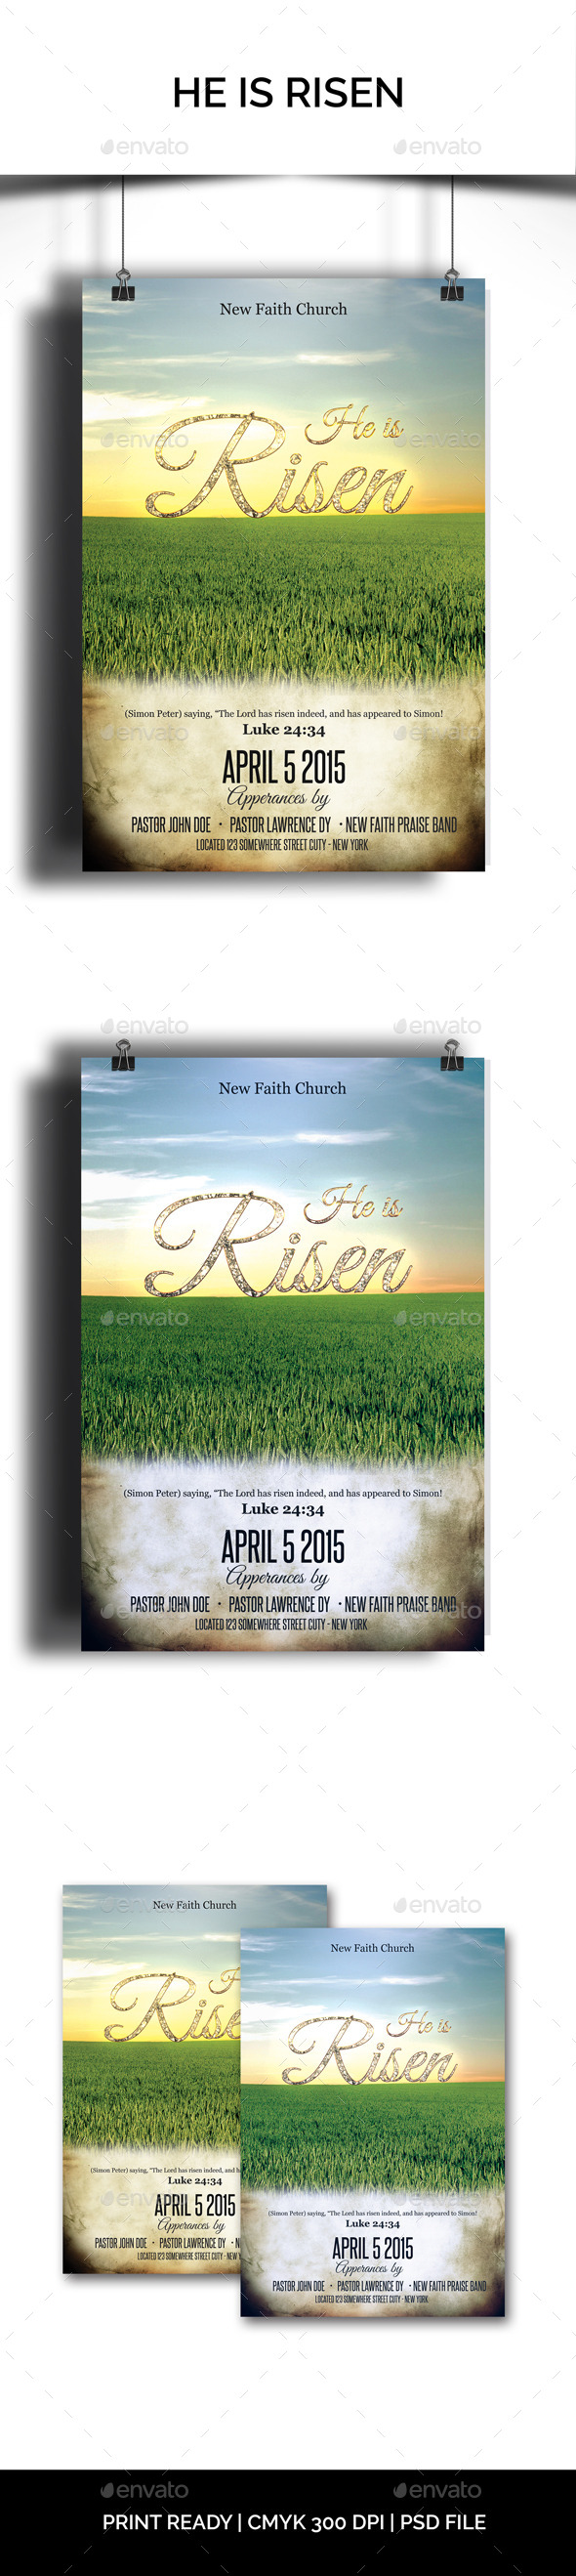 GraphicRiver He is Risen Church Flyer 10472557